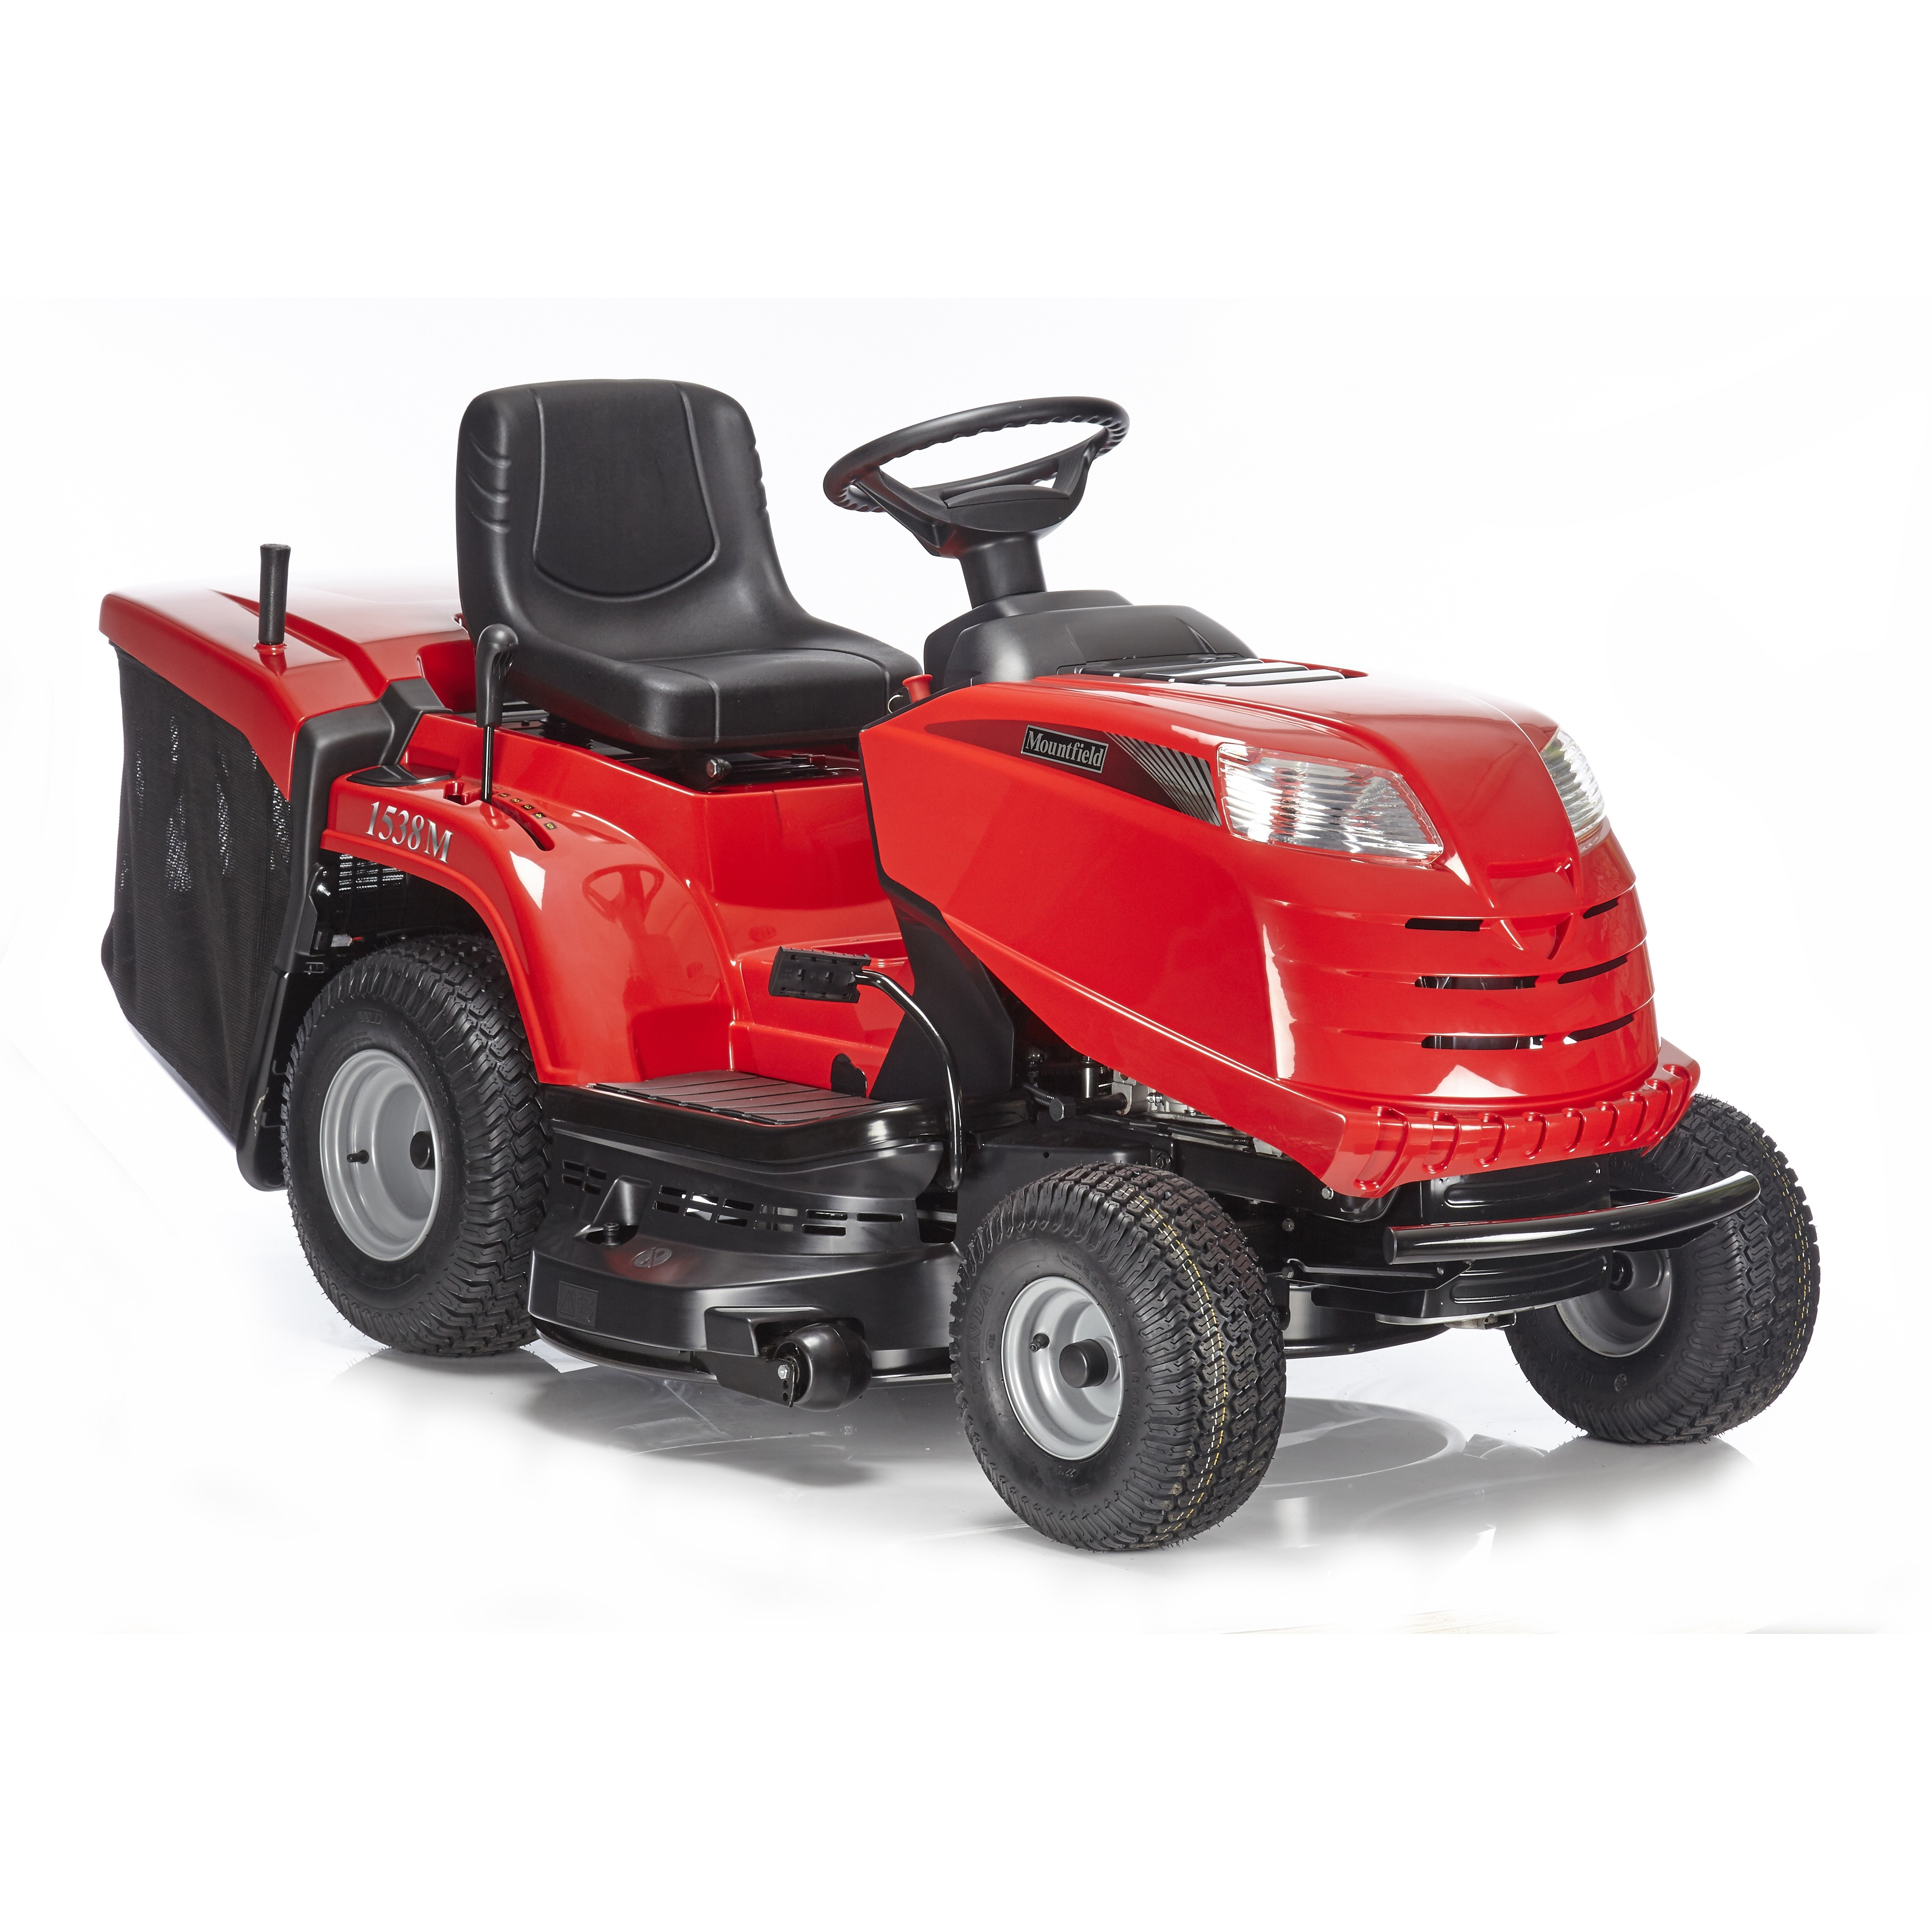 1538m lawn tractor